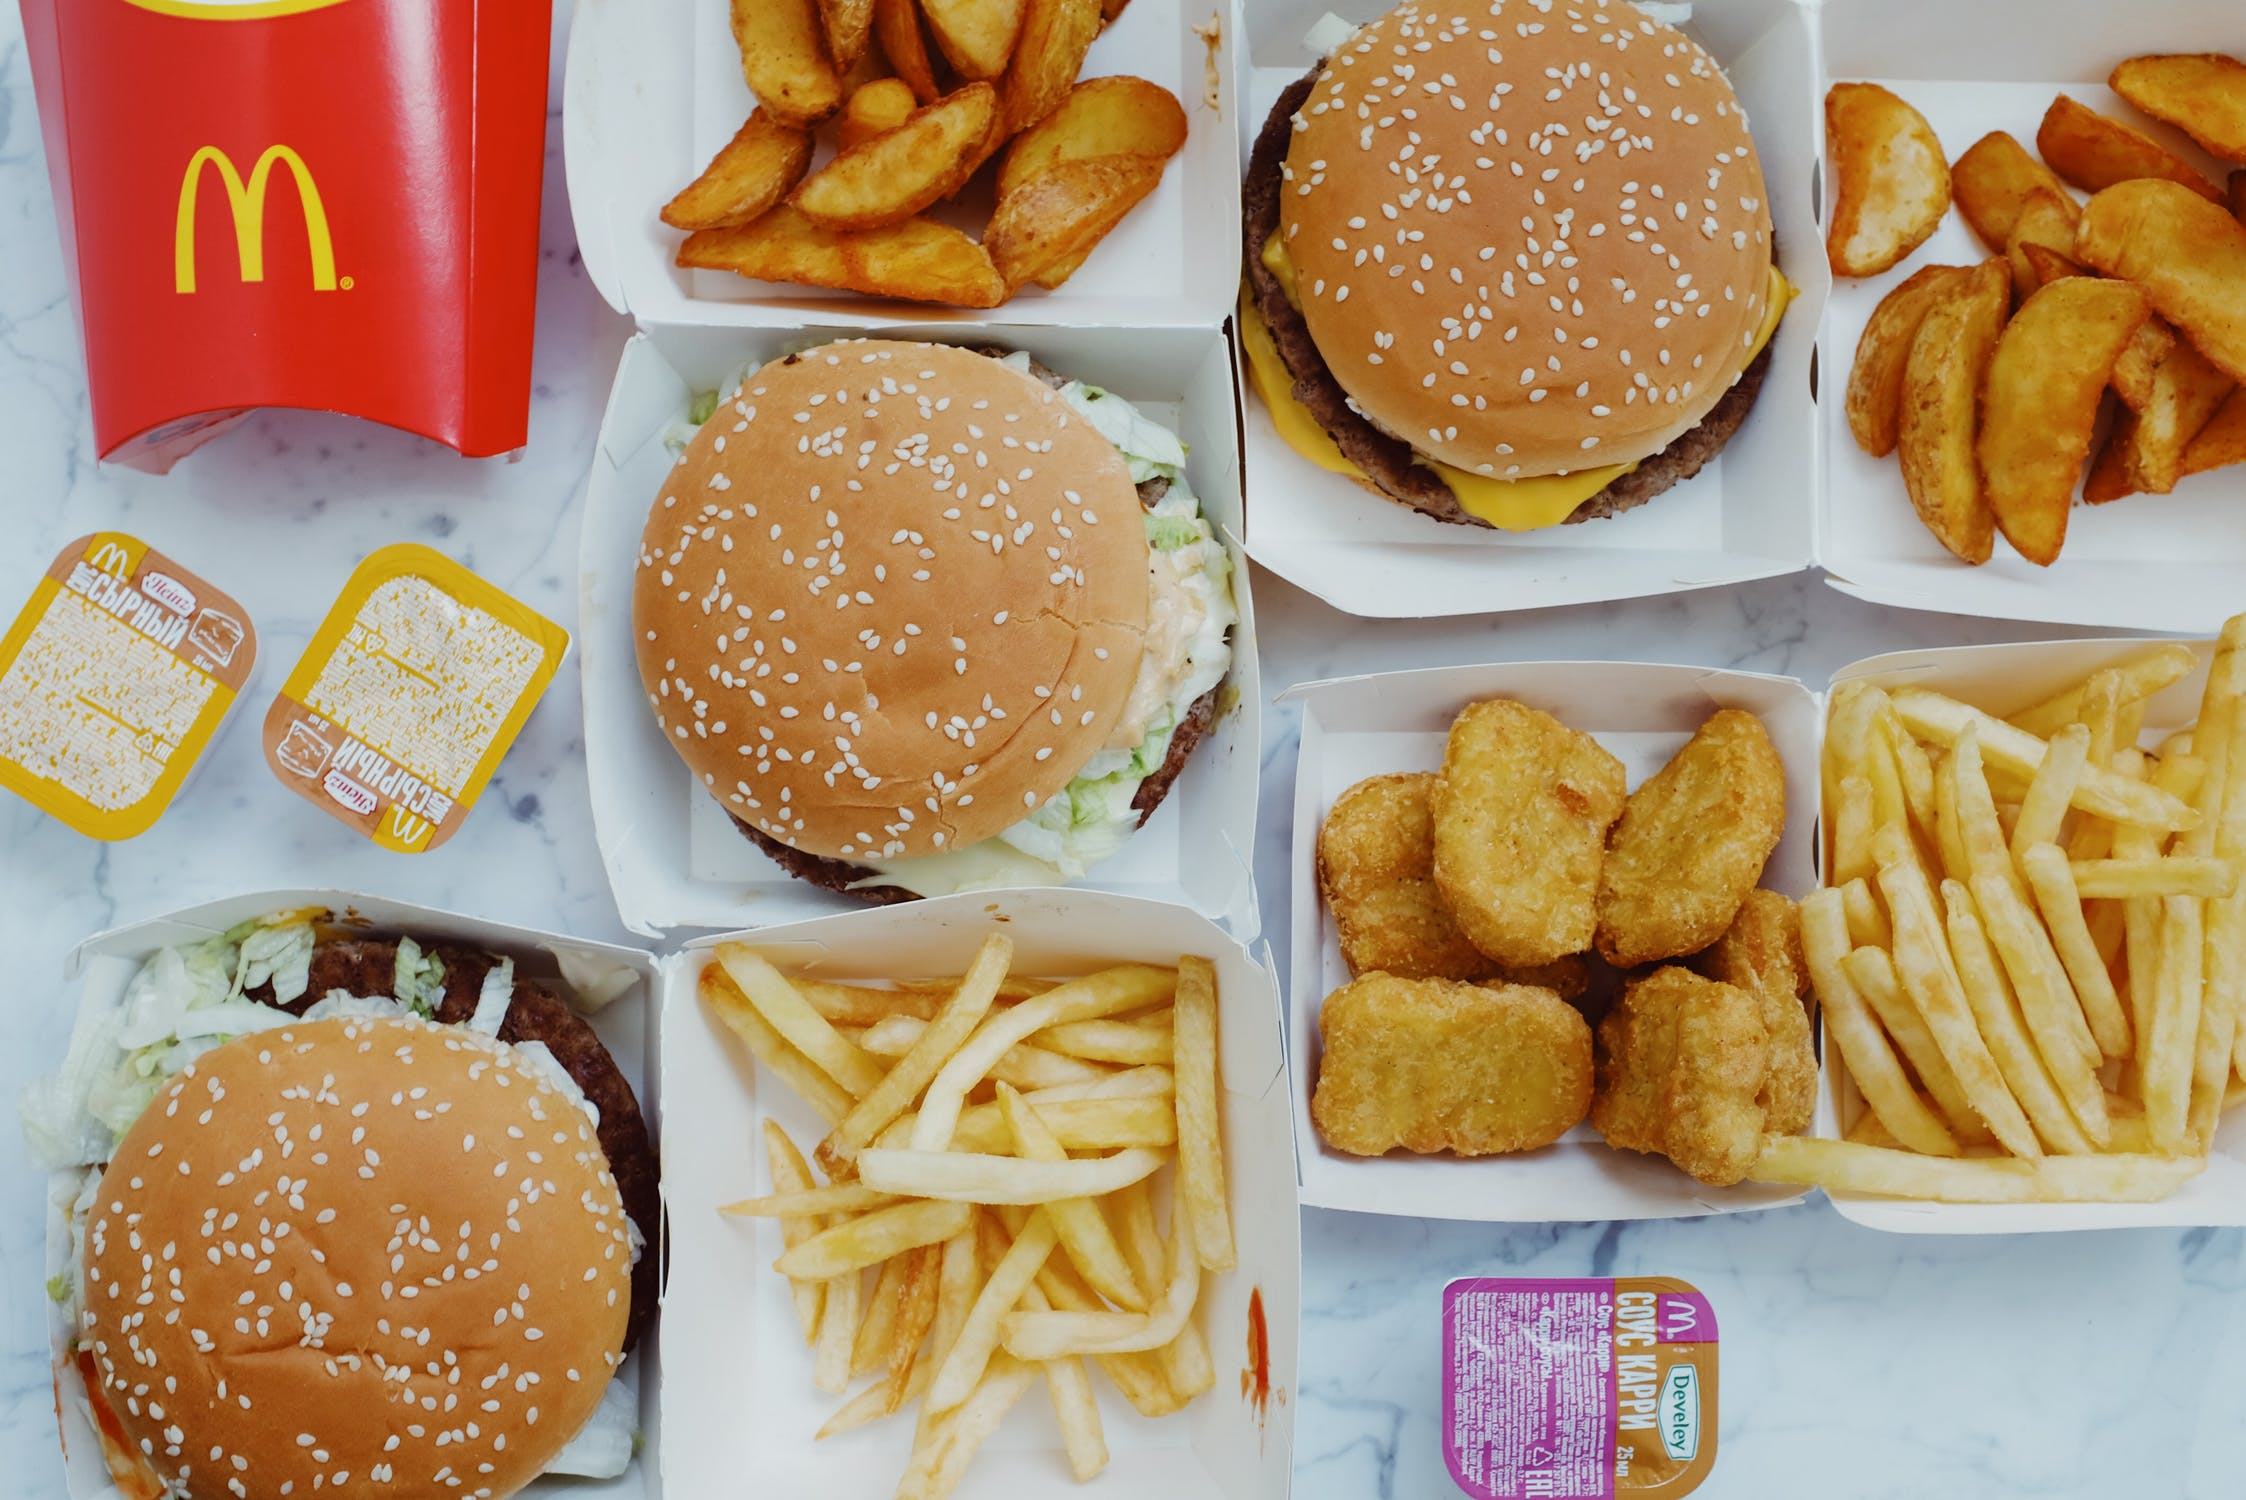 Food and Insomnia: How Overeating Affects Sleep